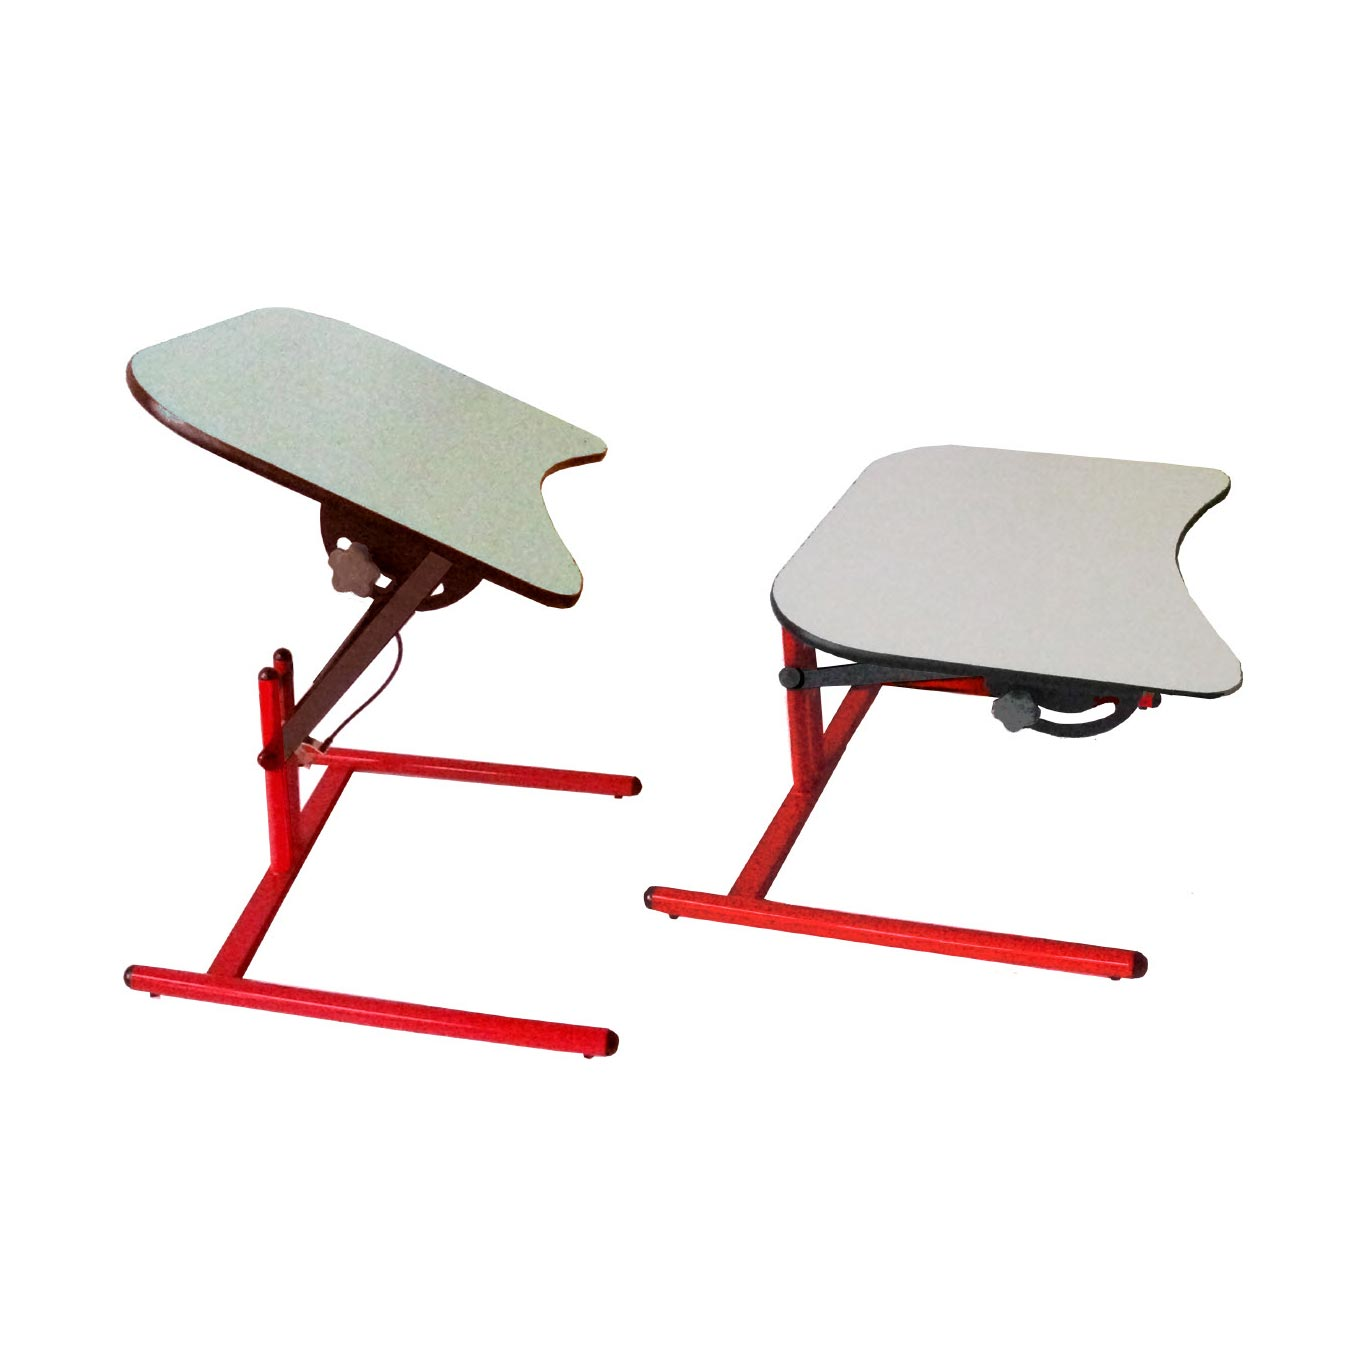 Real design mighty able table